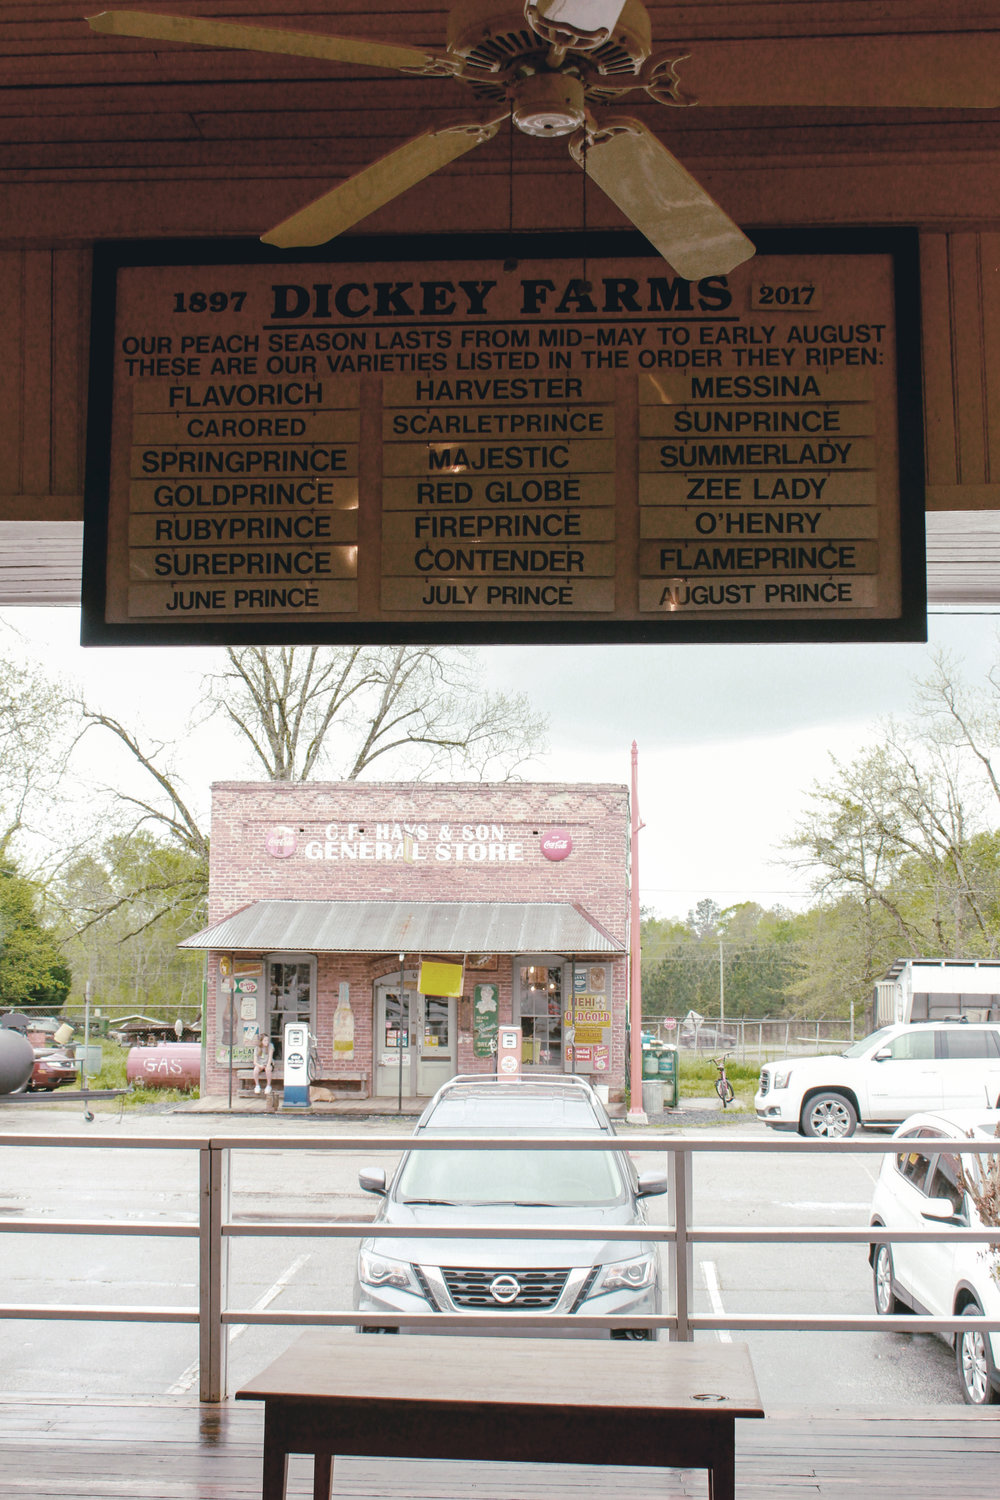 Dickey Farms peach picker / heirloomed travel